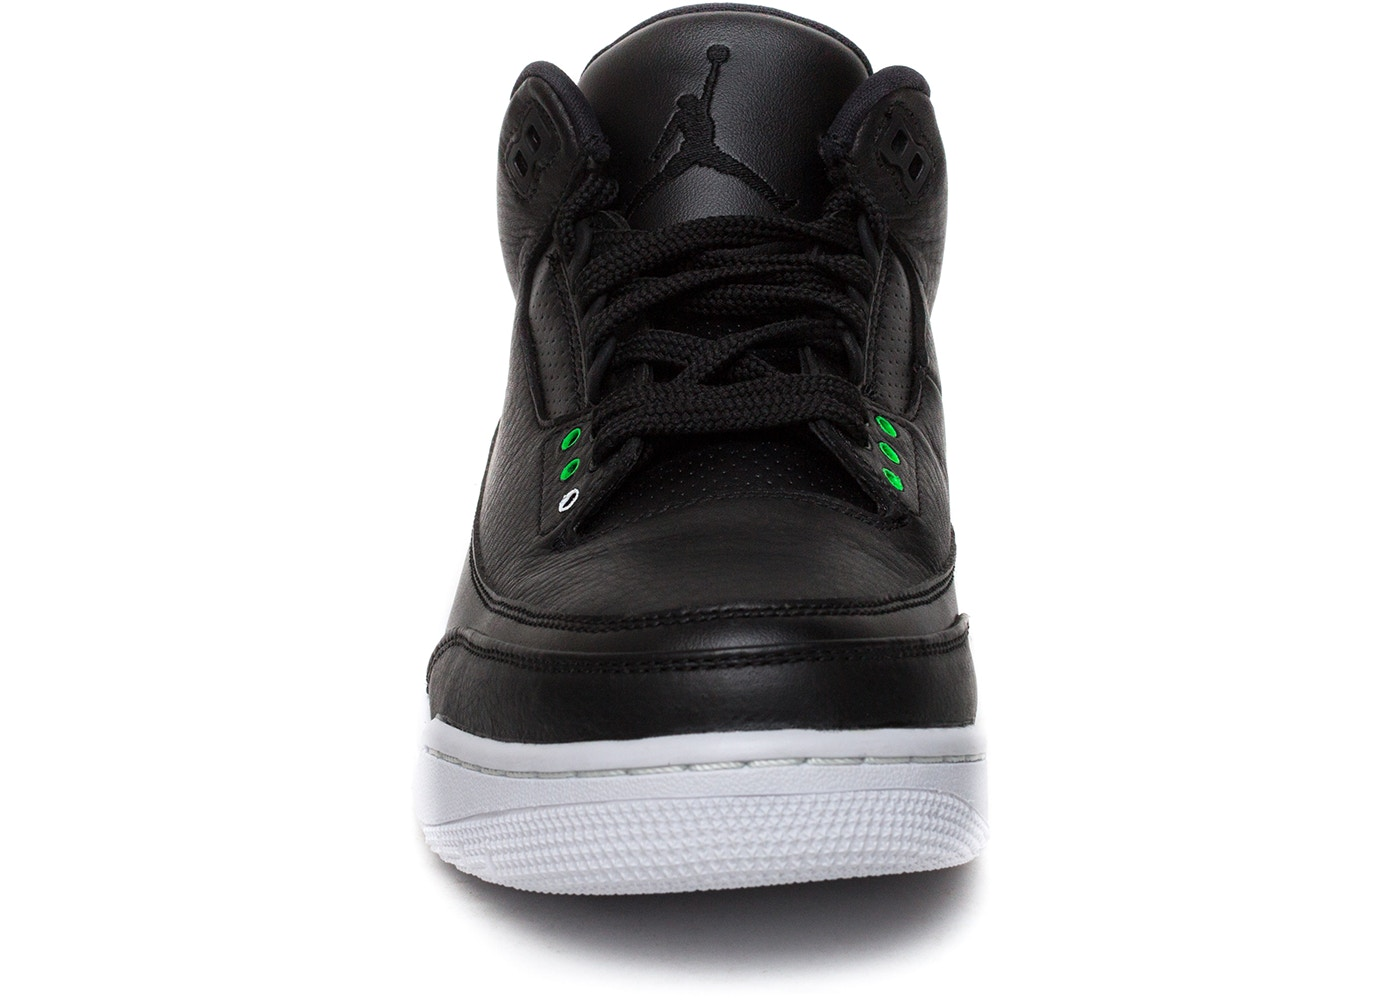 df8e504f Jordan 3 Retro StockX Day - 136064-020x